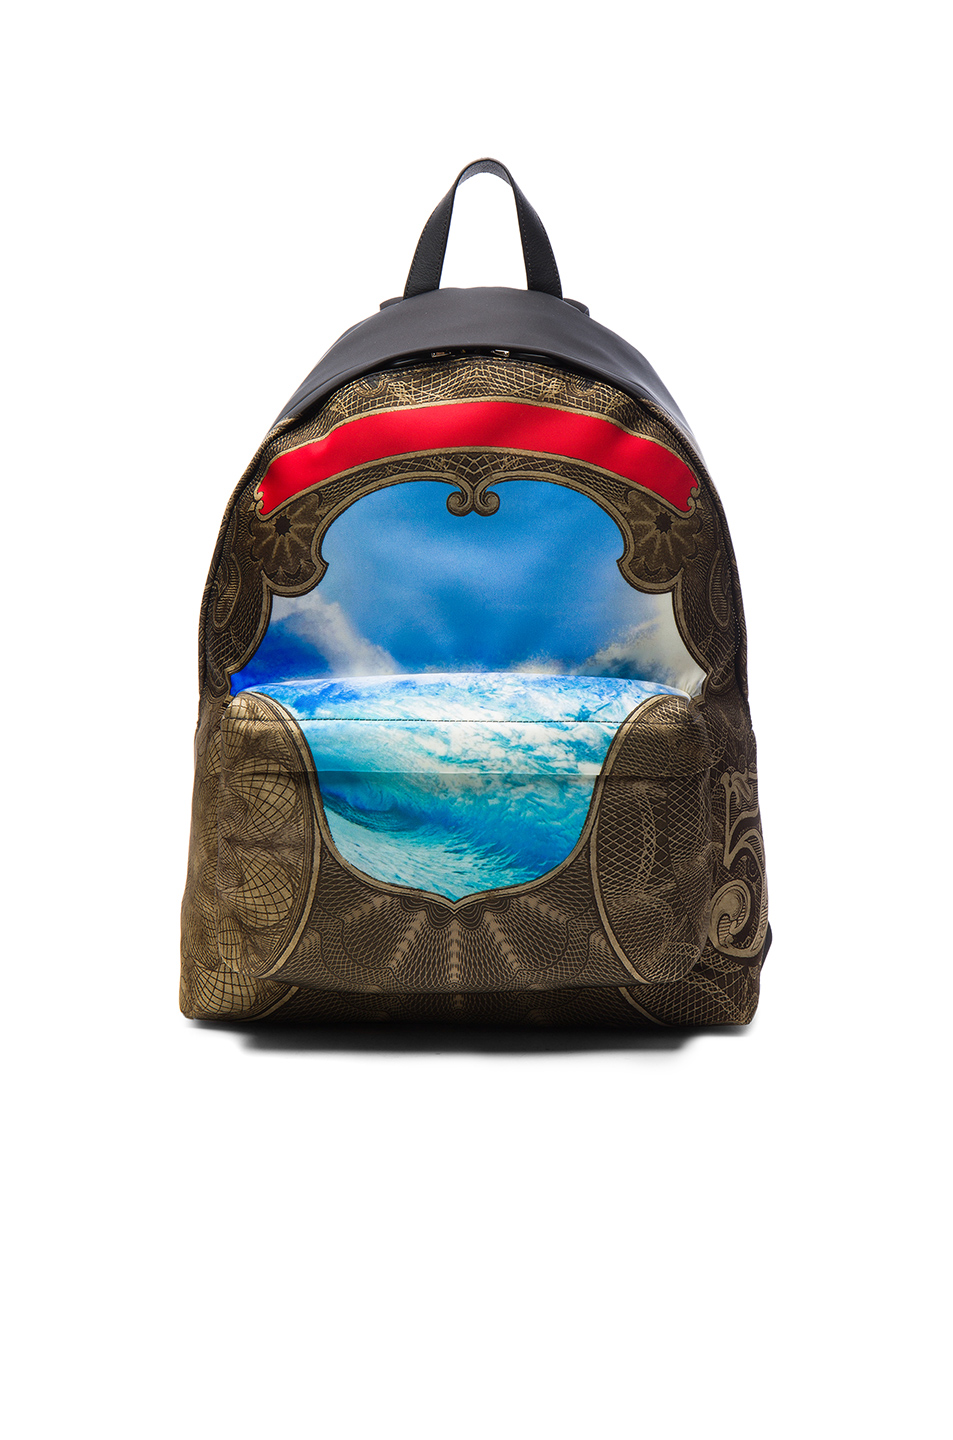 Photo of Givenchy Wave Print Backpack in Blue,Black - shop Givenchy menswear